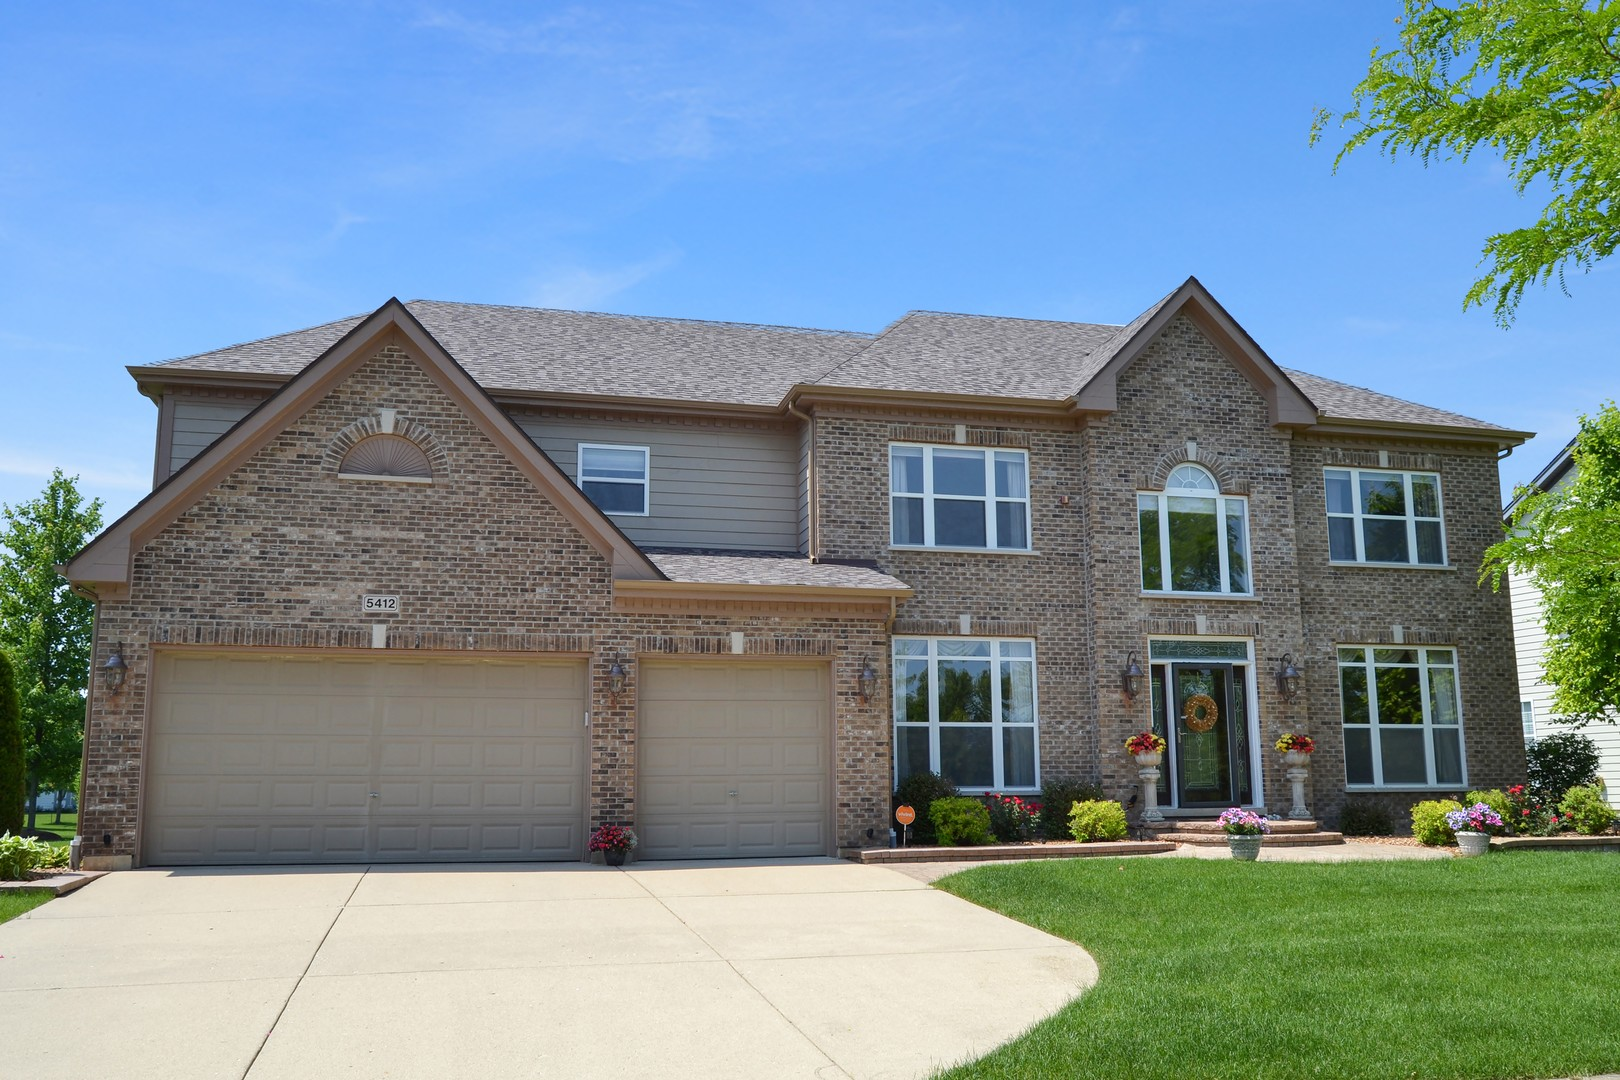 hoffman estates divorced singles Looking for hoffman estates, il single family homes for rent point2 homes has 20 single family homes for rent in the hoffman estates, il area with prices between $930 and $2,800 our newest single family home for rent in hoffman estates, il is from 10/05/2018.